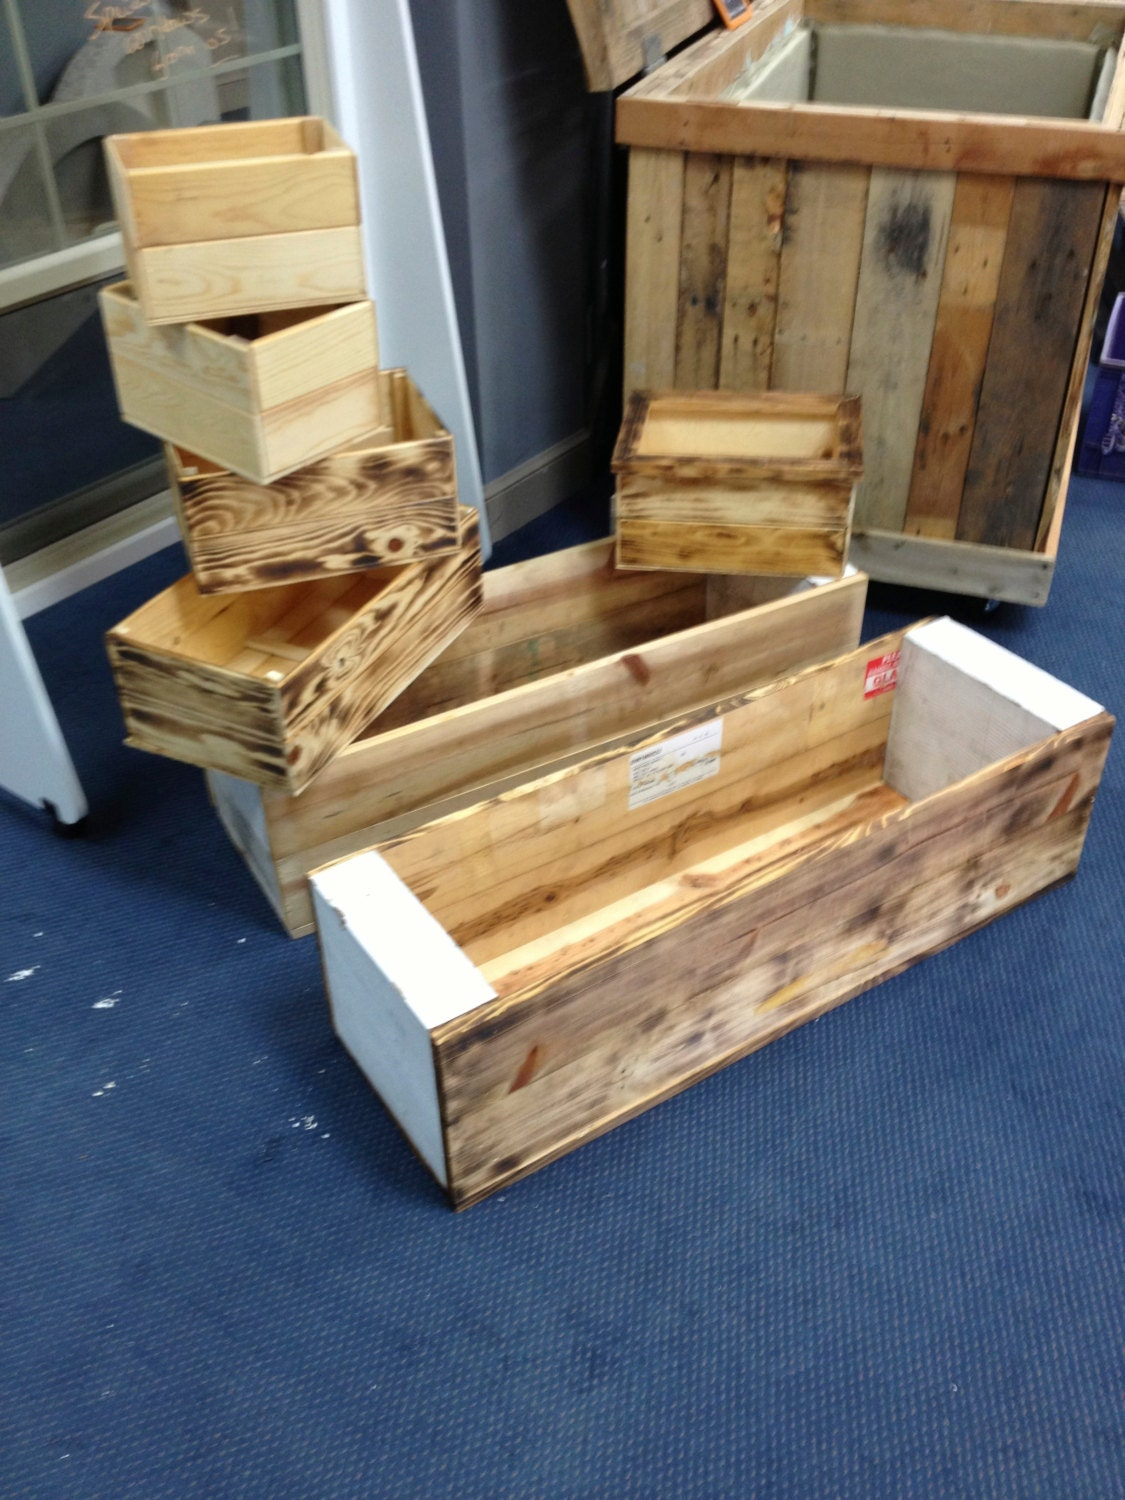 Planter boxes by recowarehouse on etsy for How to make a planter box out of pallets